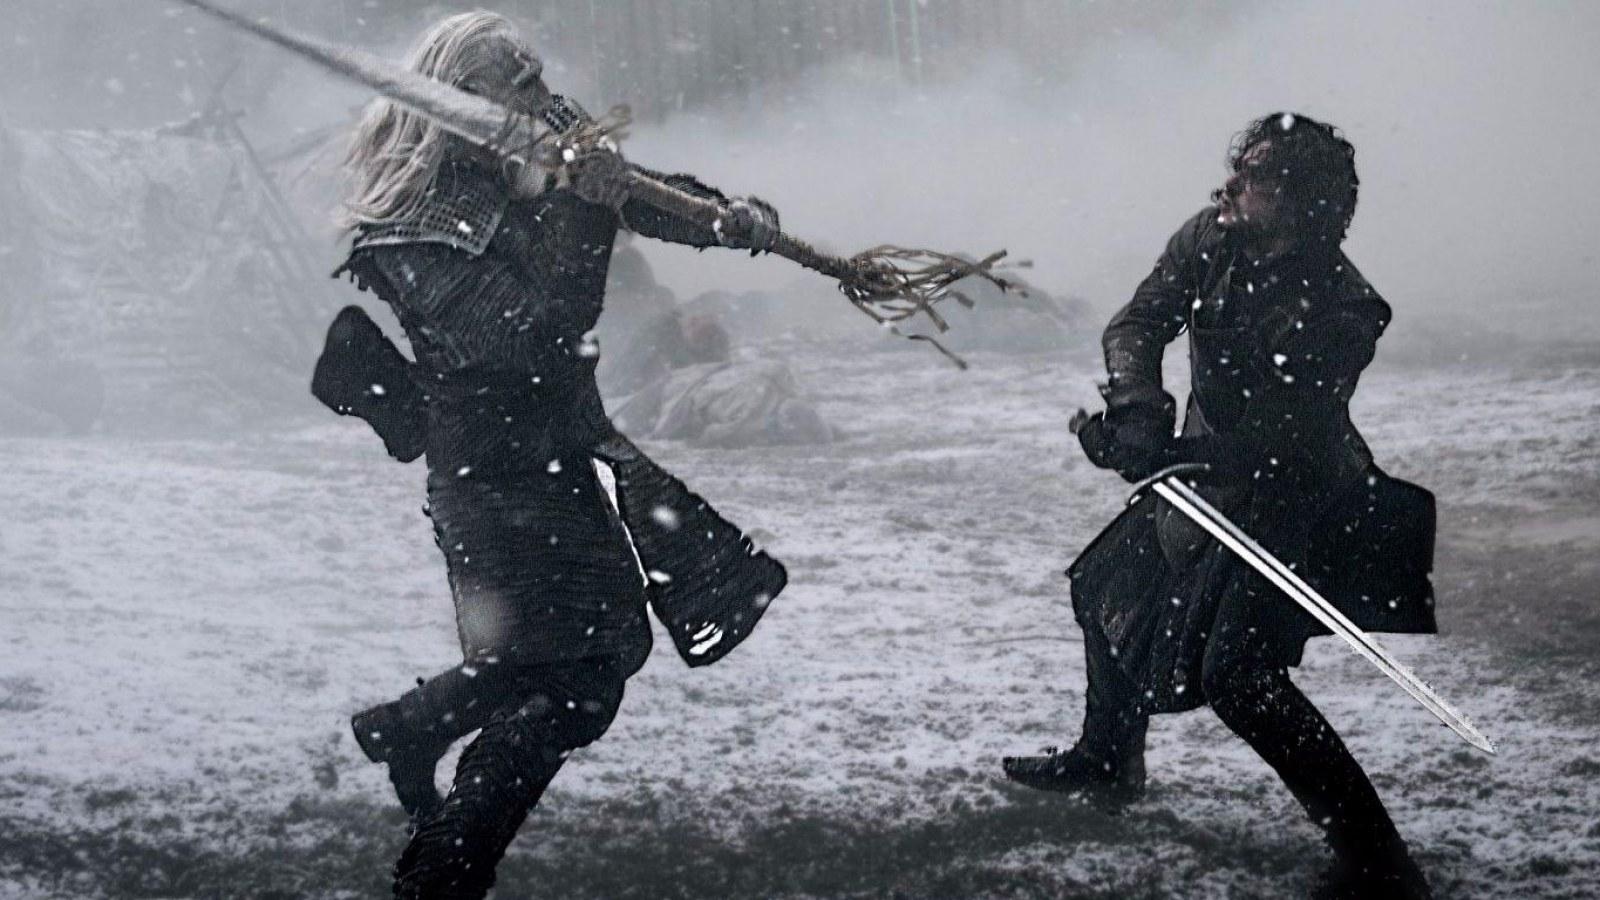 Game of Thrones' Season 8: Where are the Valyrian Steel Swords?